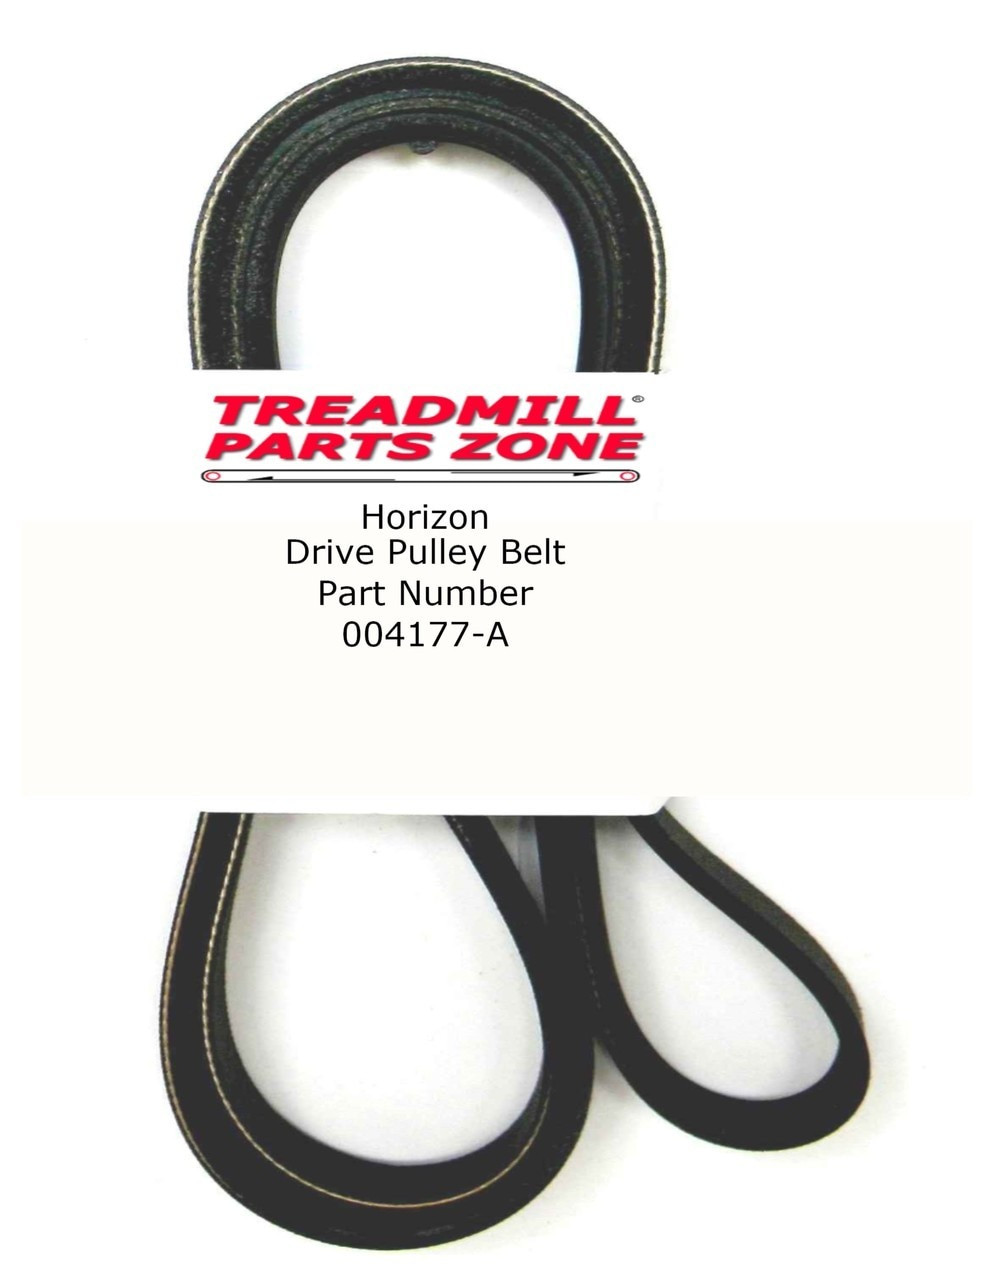 Horizon Elliptical Model CE4.3 EP571 Drive Pulley Belt Part Number 004177-A